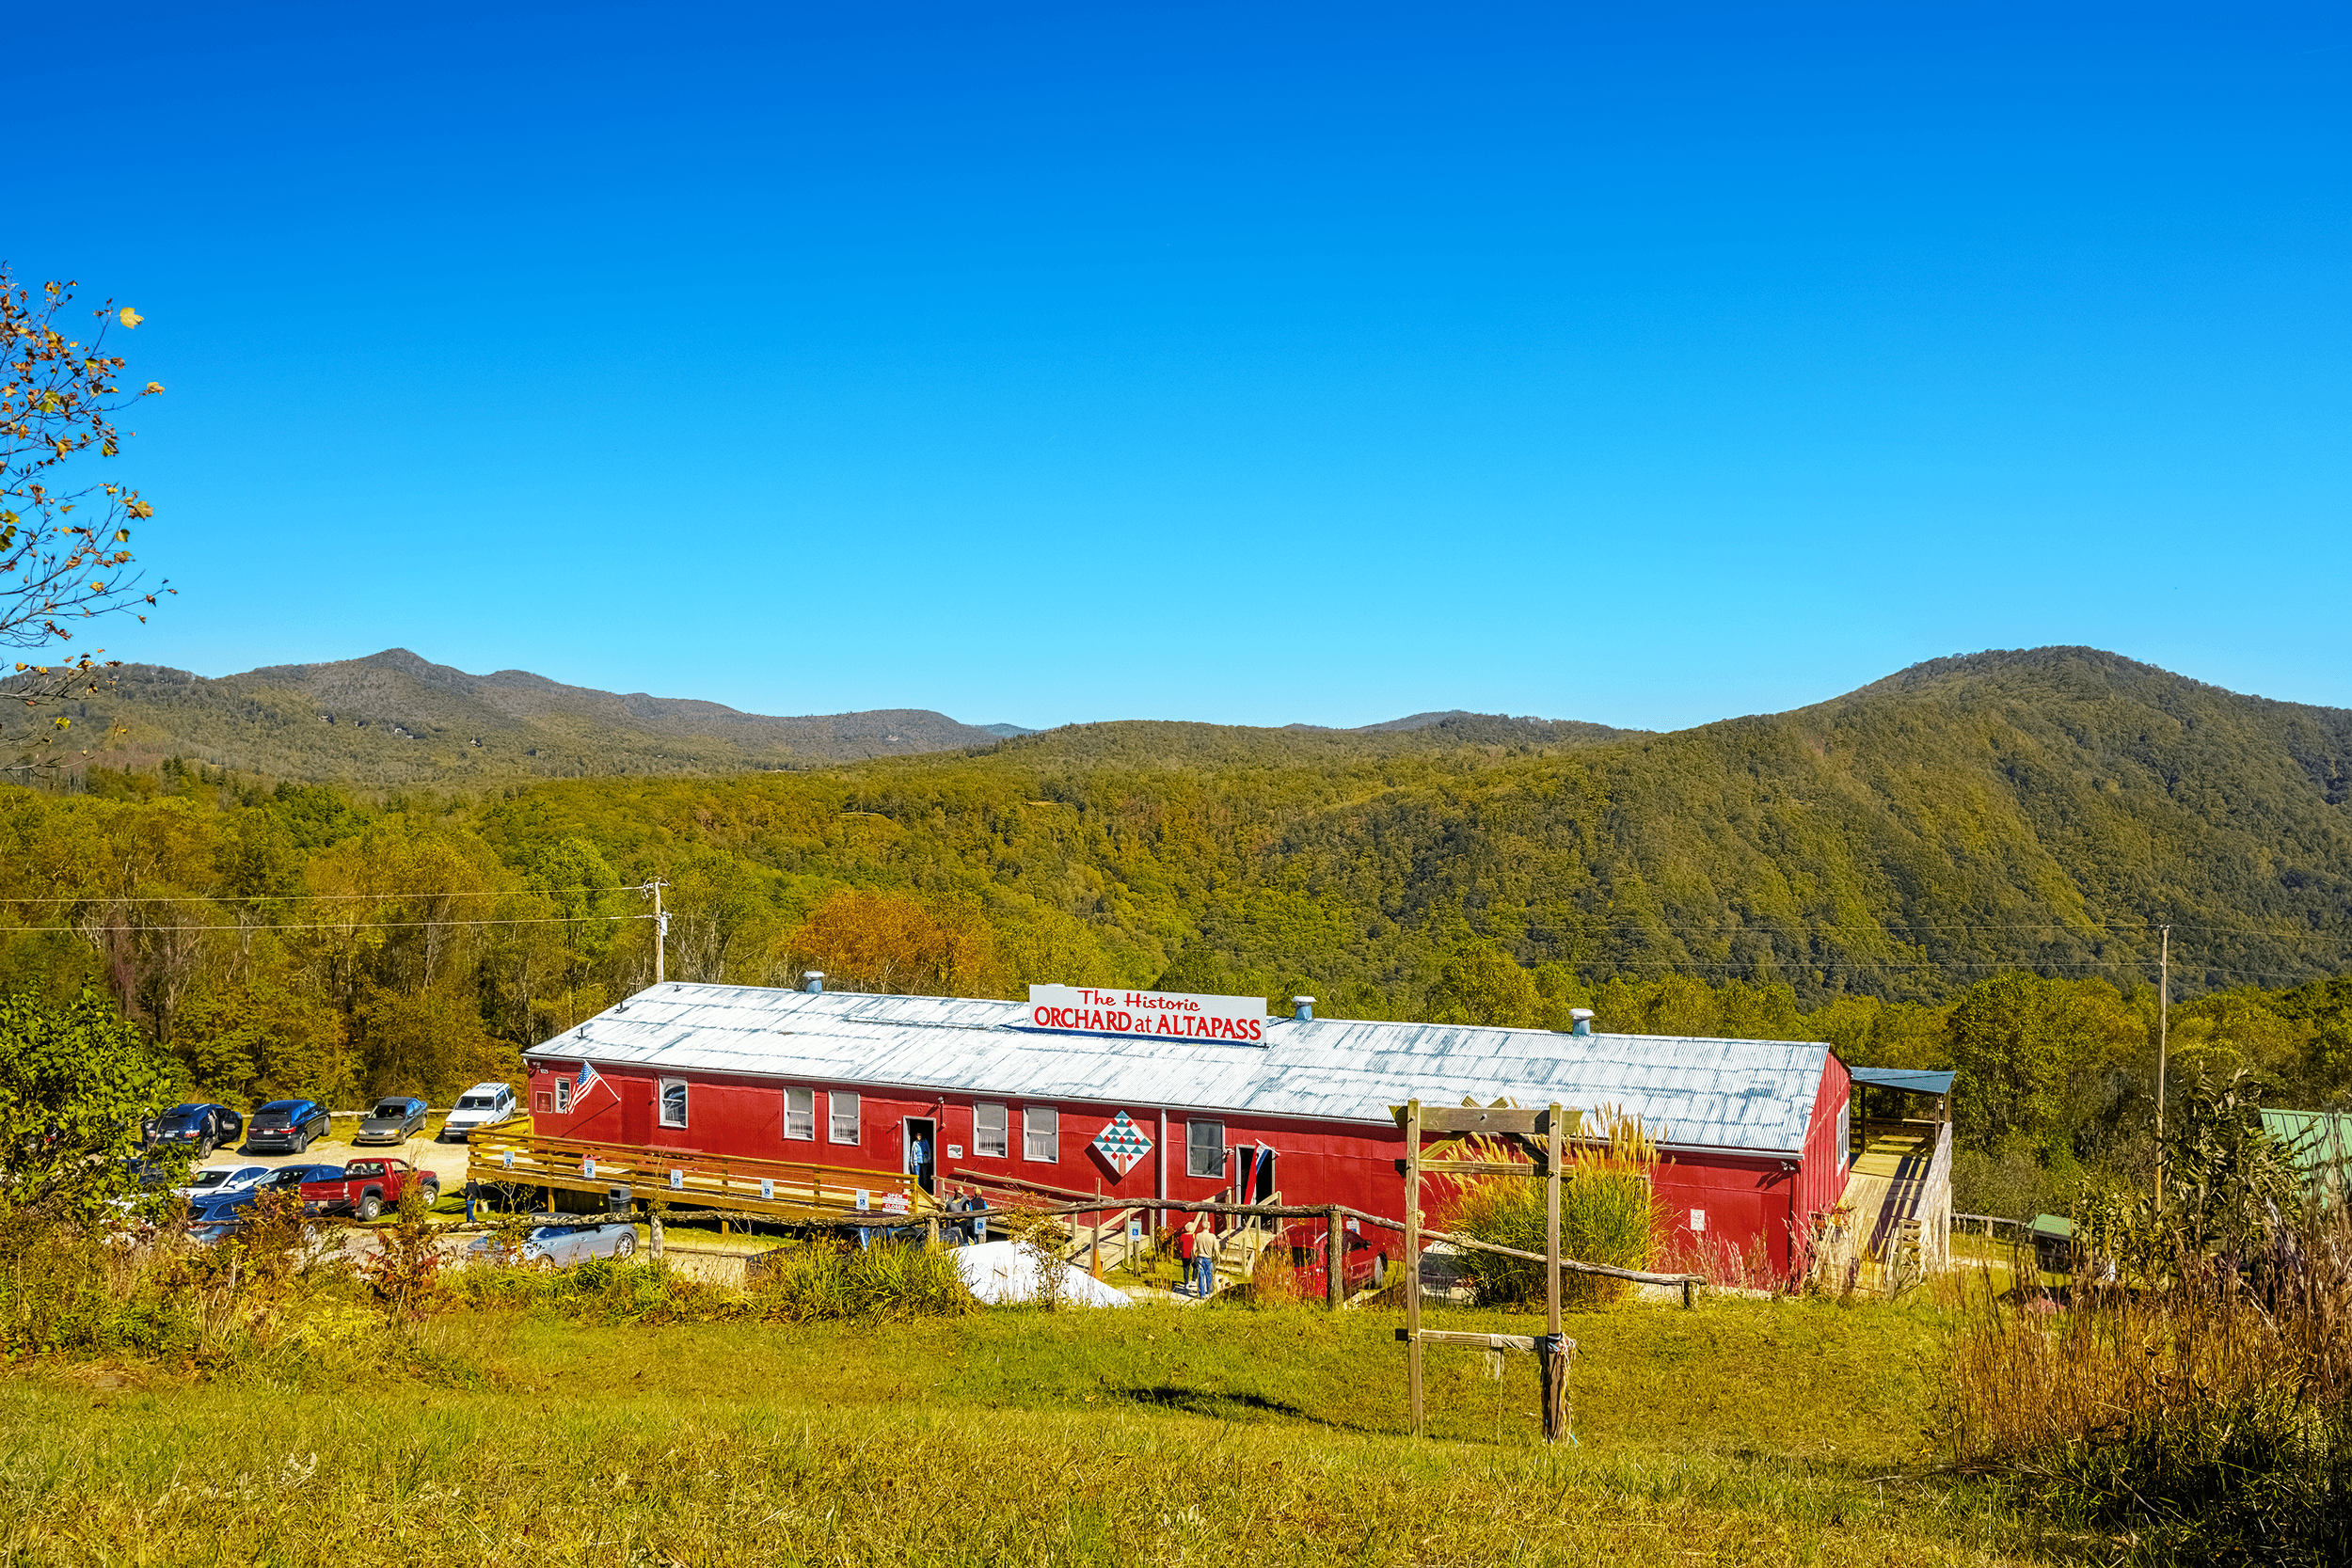 Located in the former packing-house from the 1950s, the red painted store offers an array of local and regional products, such as jams, jellies, preserves, syrups, dips, pickles, and relishes as well as crafts, books, and toys.